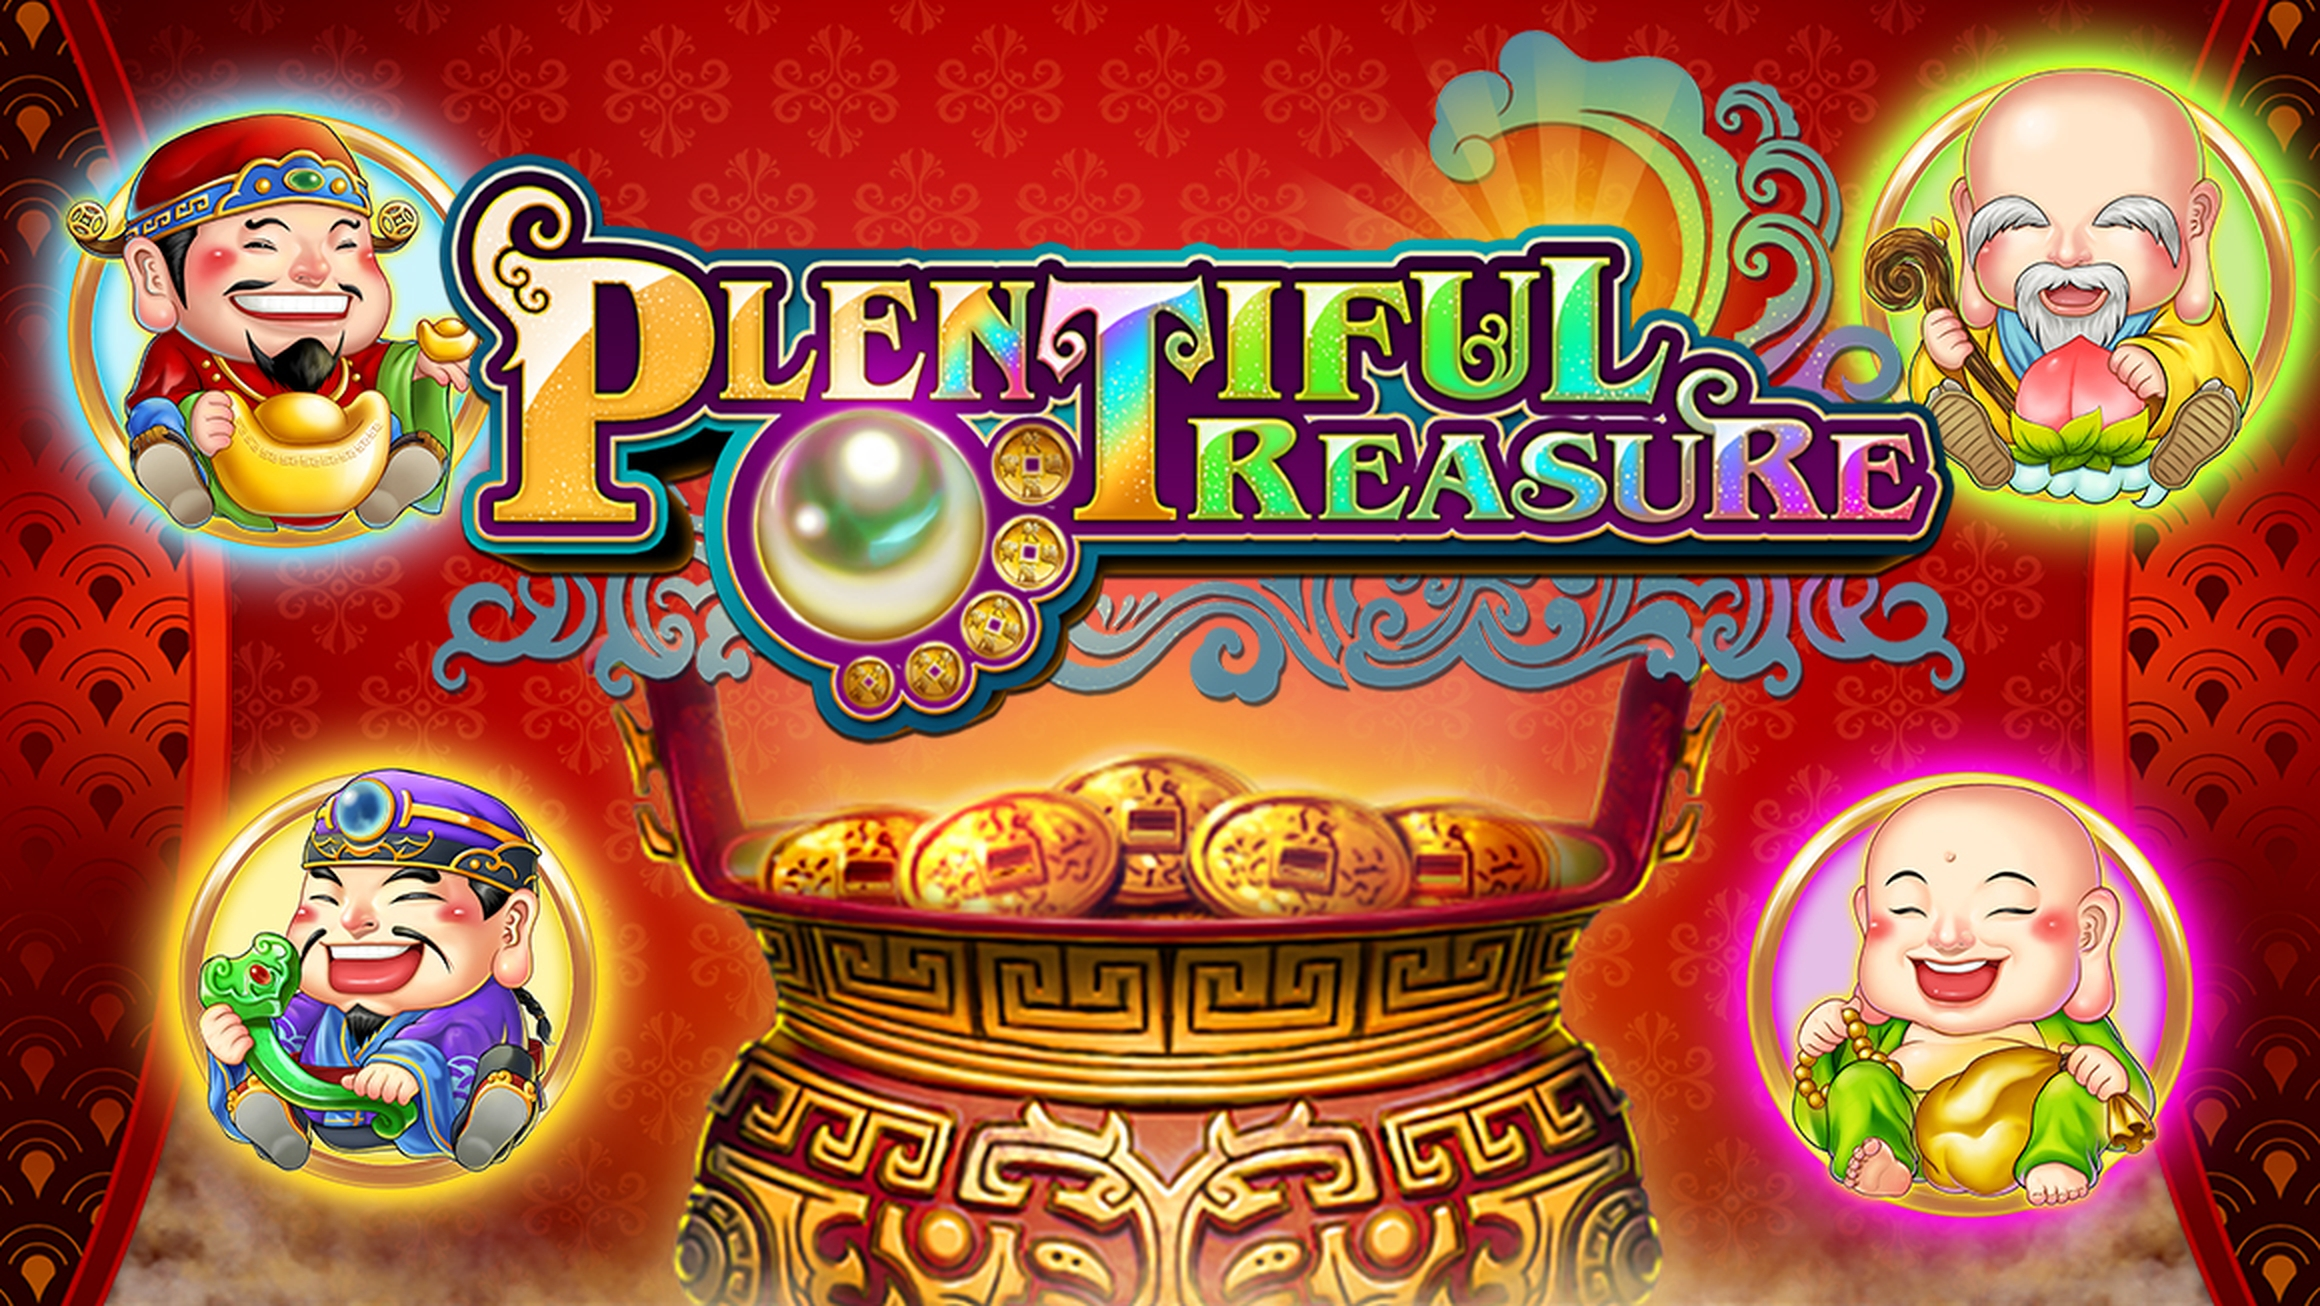 The Plentiful Treasure Online Slot Demo Game by Real Time Gaming